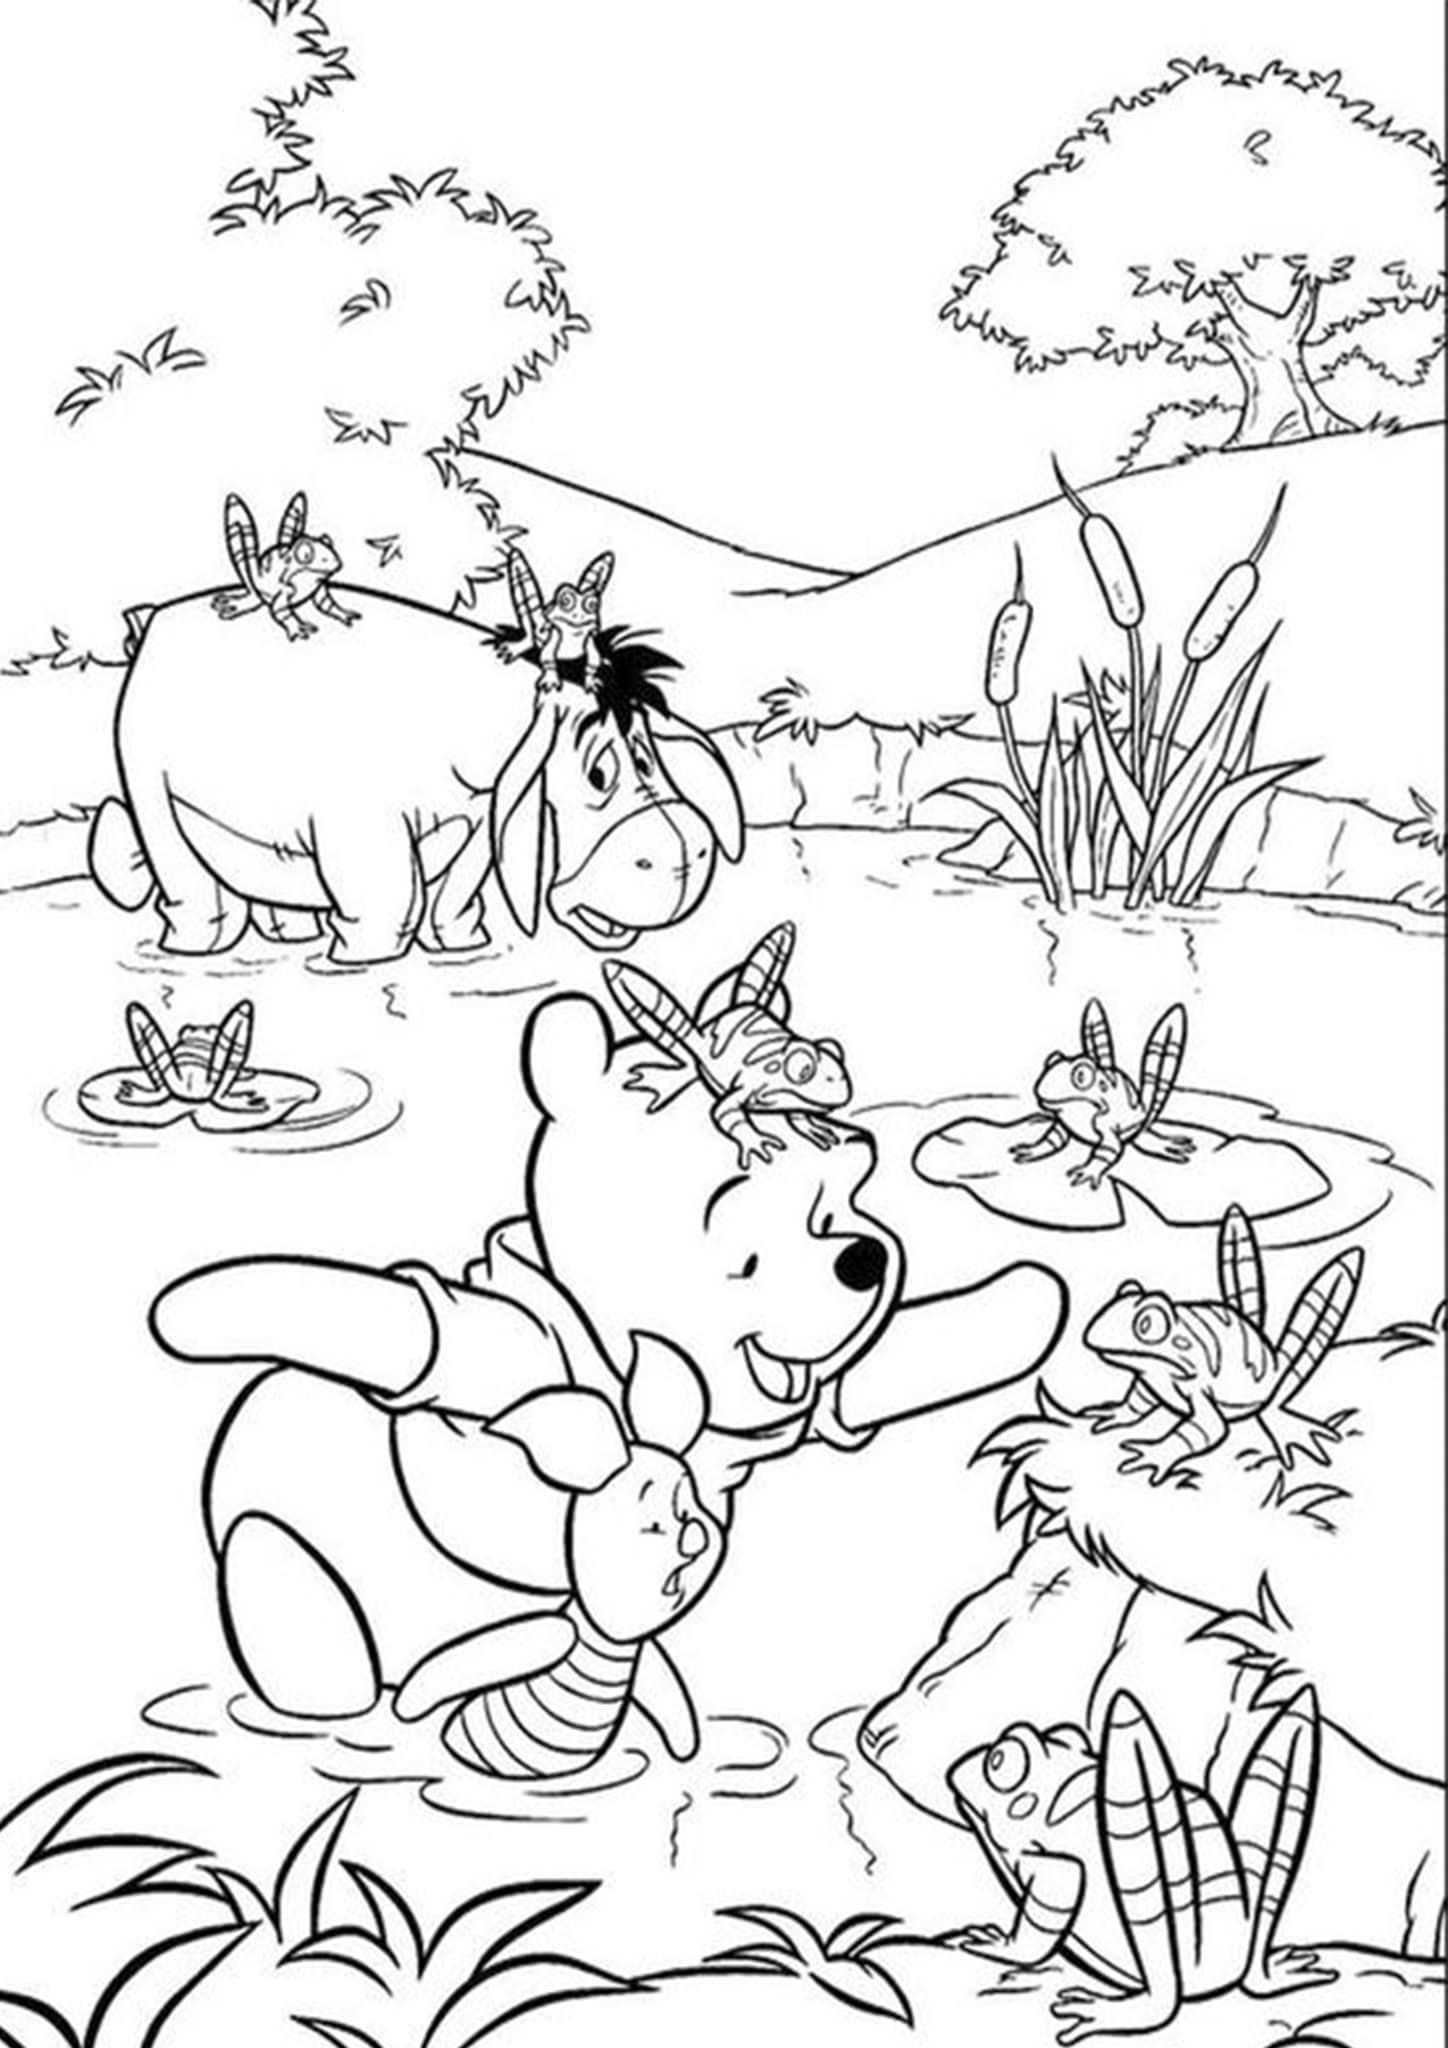 Free Easy To Print Winnie The Pooh Coloring Pages Cartoon Coloring Pages Disney Coloring Pages Winnie The Pooh Pictures